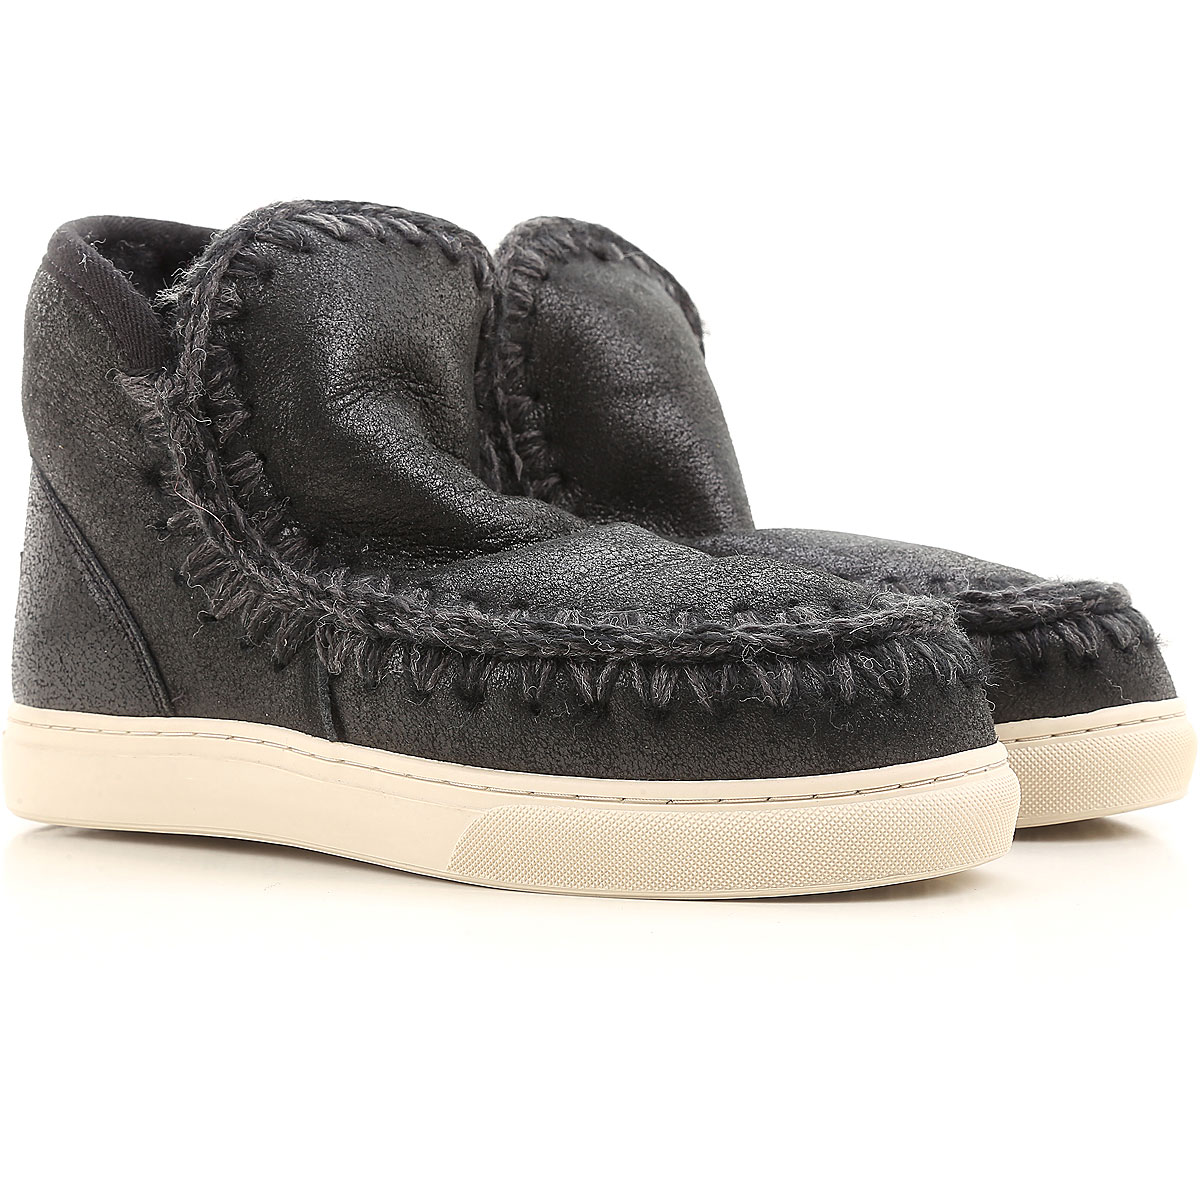 Image of Mou Boots for Women, Booties, Black, Leather, 2017, EUR 36 - UK 3 - USA 5.5 EUR 37 - UK 4 - USA 6.5 EUR 38 - UK 5 - USA 7.5 EUR 39 - UK 6 - USA 8.5 EUR 40 - UK 7 - USA 9.5